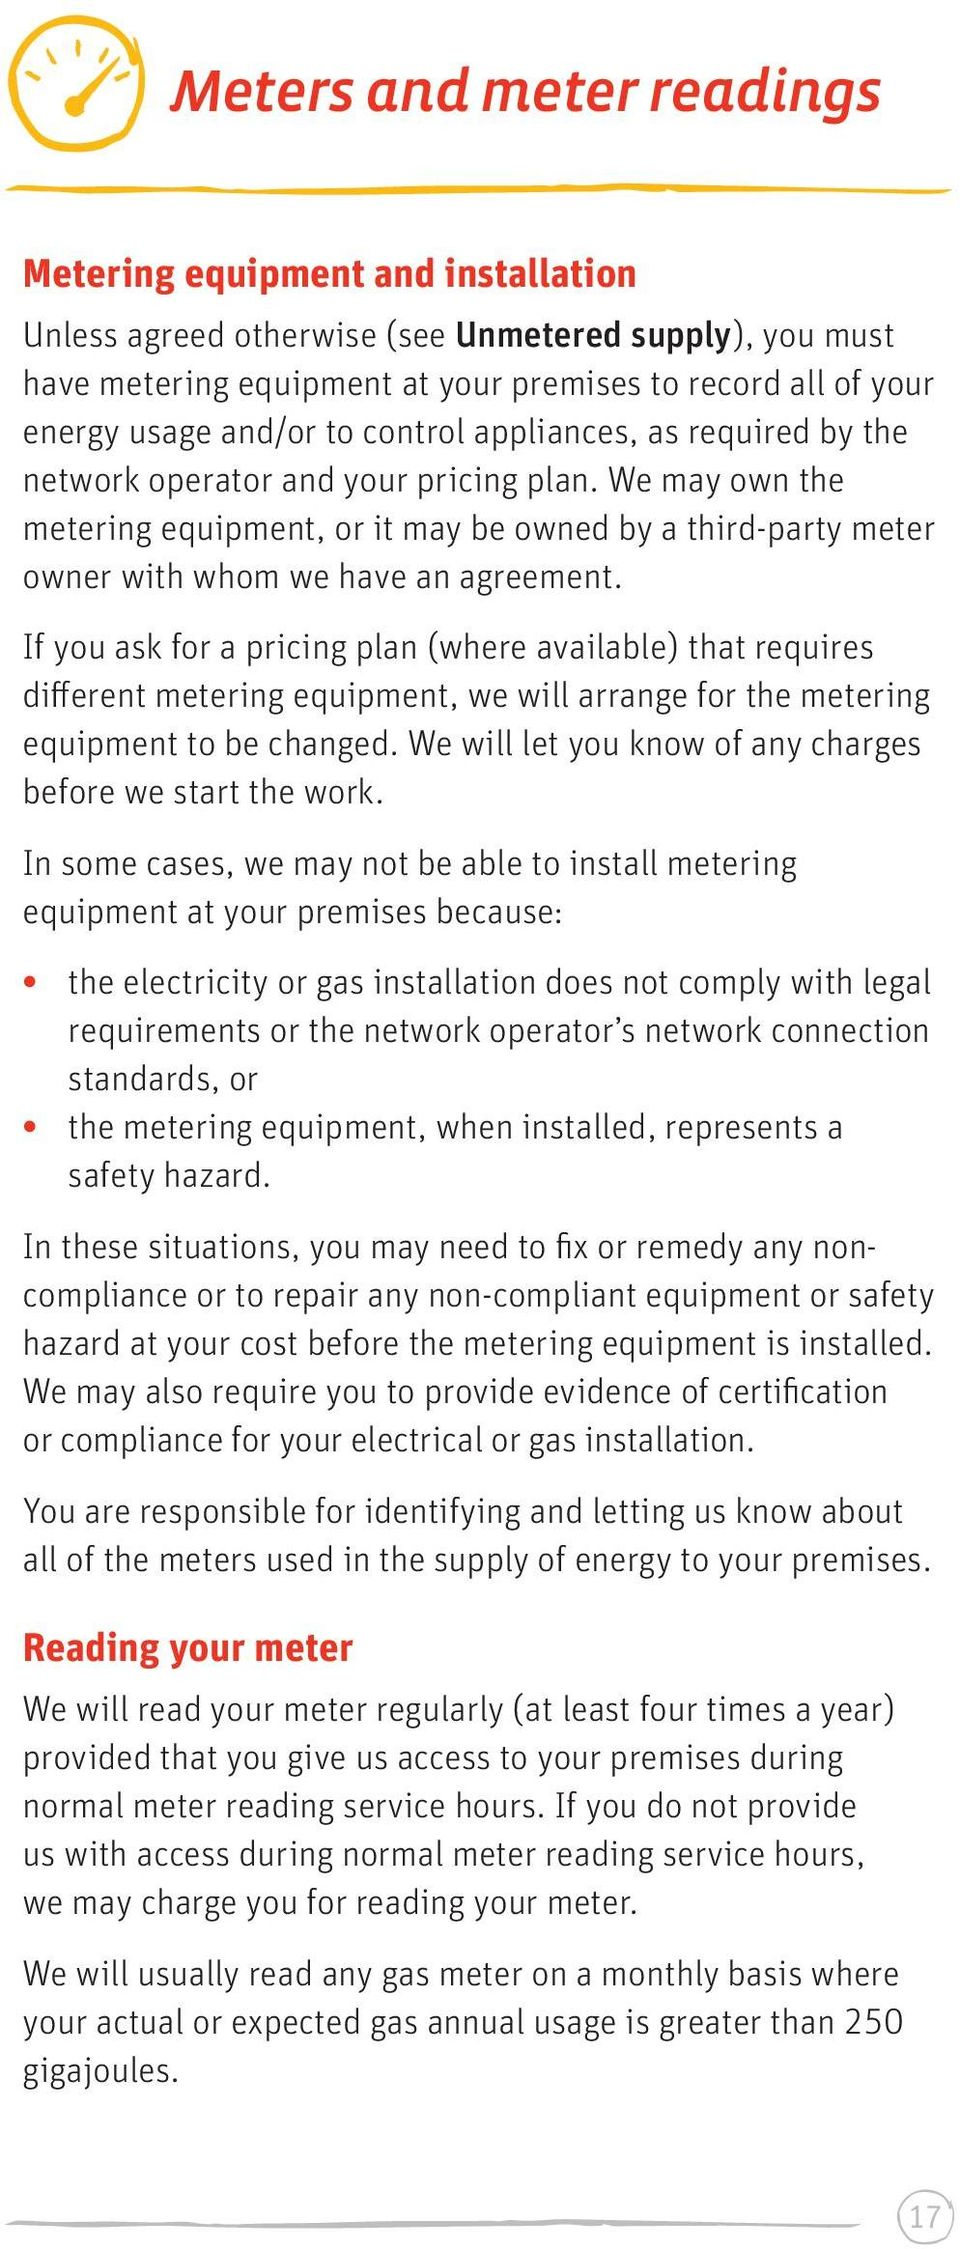 We may own the metering equipment, or it may be owned by a third-party meter owner with whom we have an agreement.